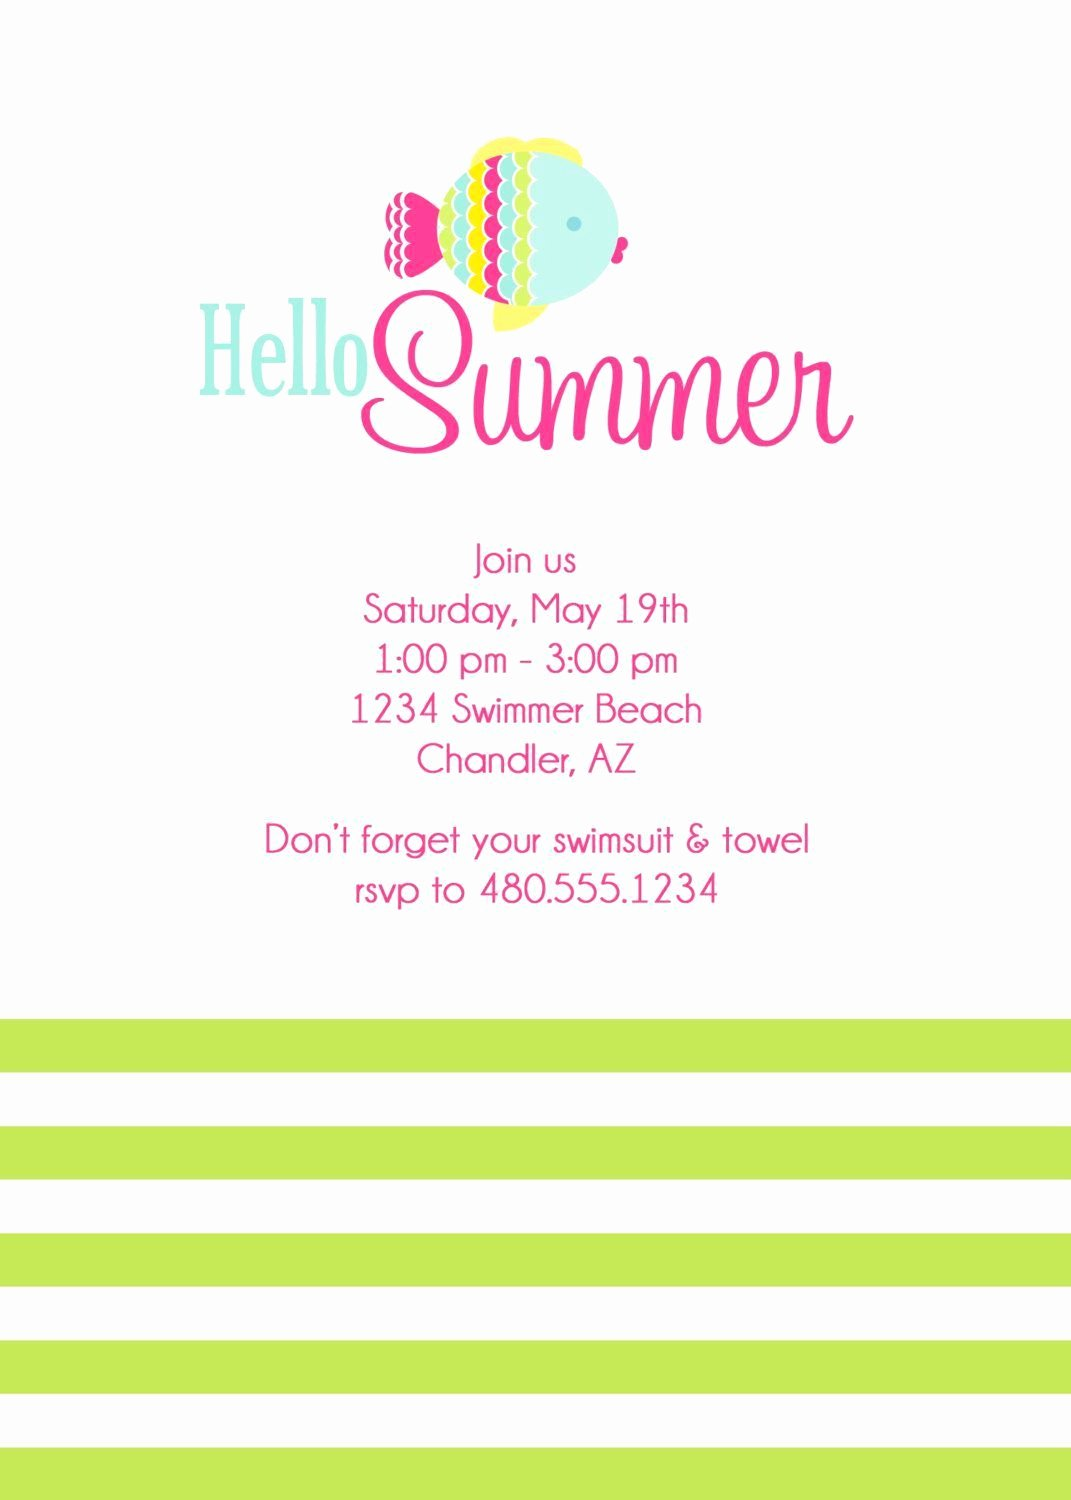 Summer Party Invitation Template Inspirational Summer Party Invitations Summer Party Invitations